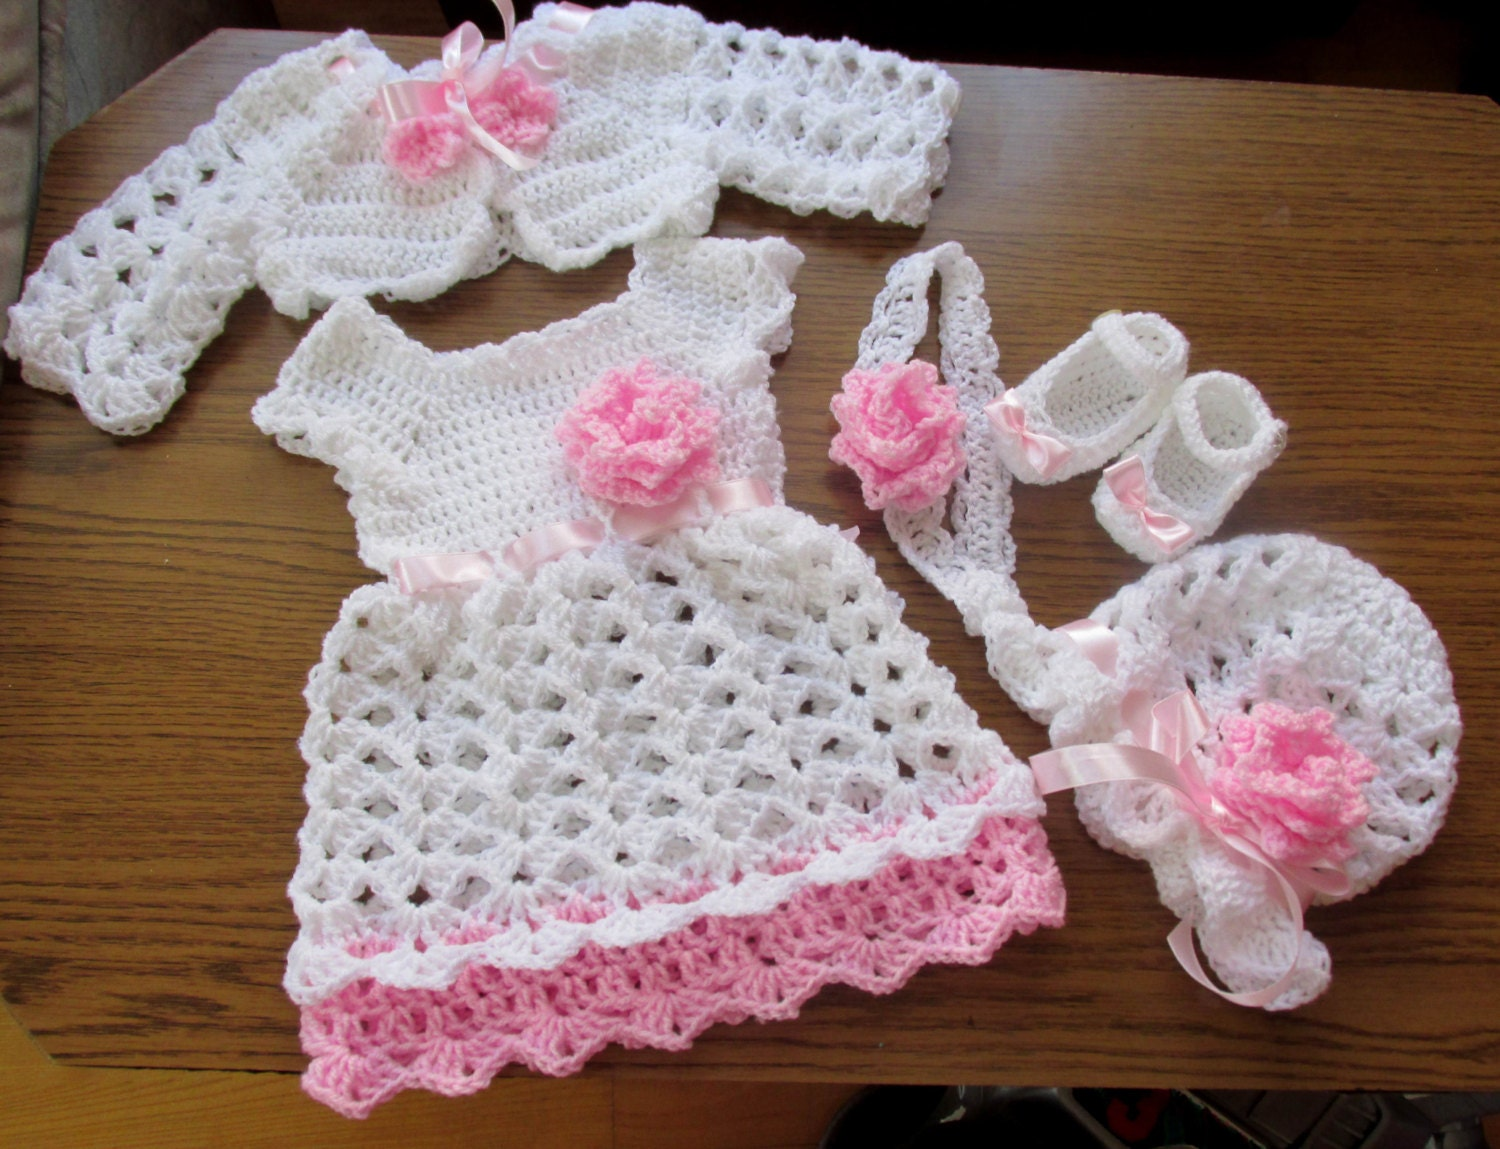 Baby girl crochet outfit baby dress bolero hat shoes and